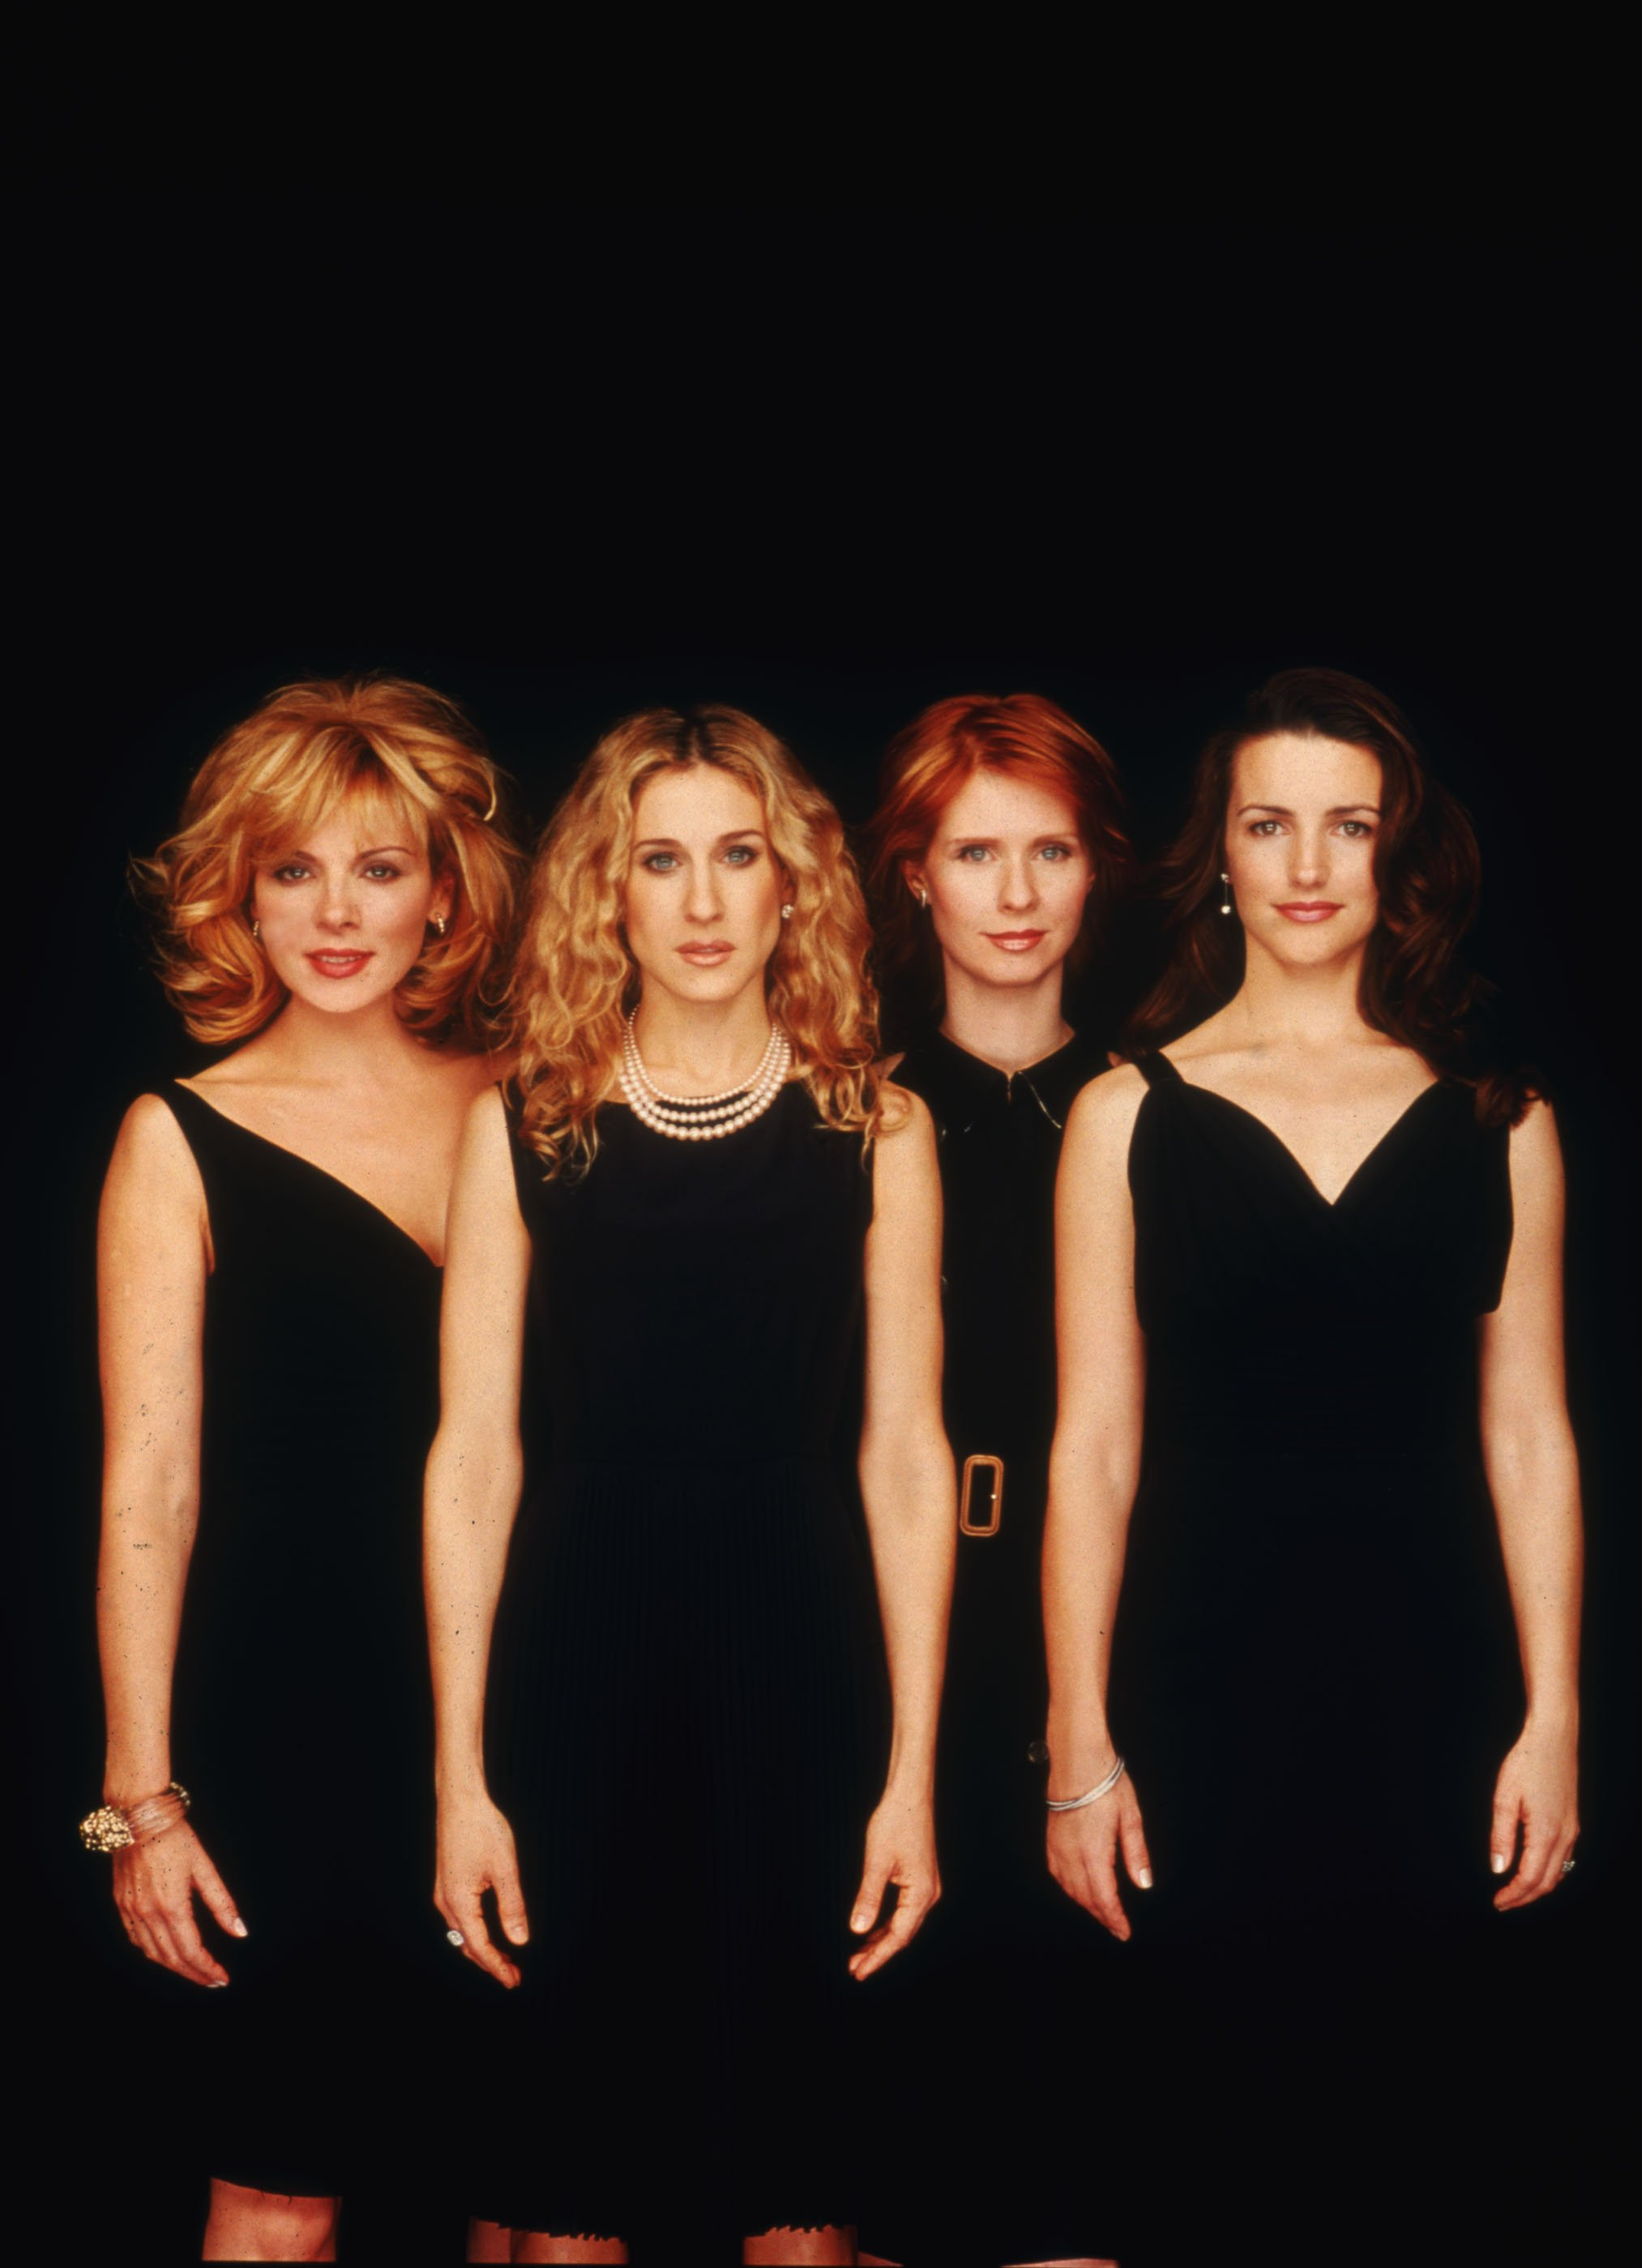 """The stars of """"Sex and The City"""", from left to right: Kim Cattral, Sarah Jessica Parker, Cynthia Nixon and Kristin Davis. The series aired between 1998 and 2004. 